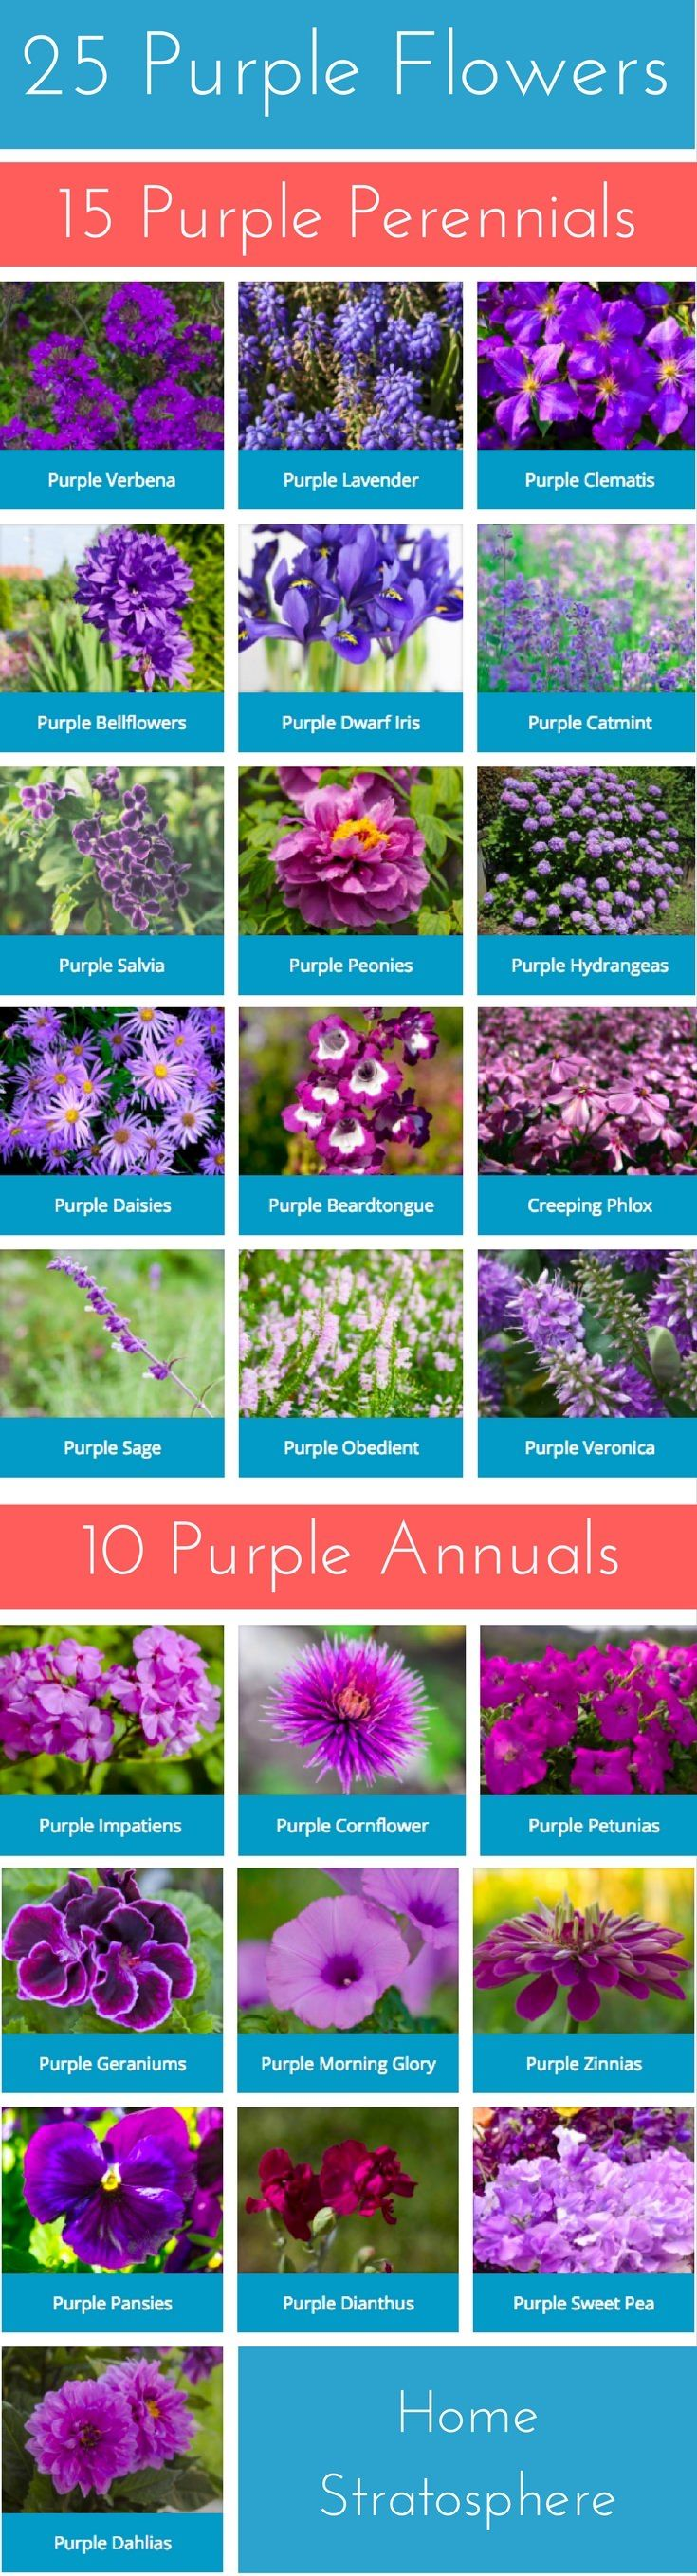 25 Purple Flower Ideas for Your Garden, Pots and PlantersTable of Contents for the Book Ultimate Guide to Building Decks